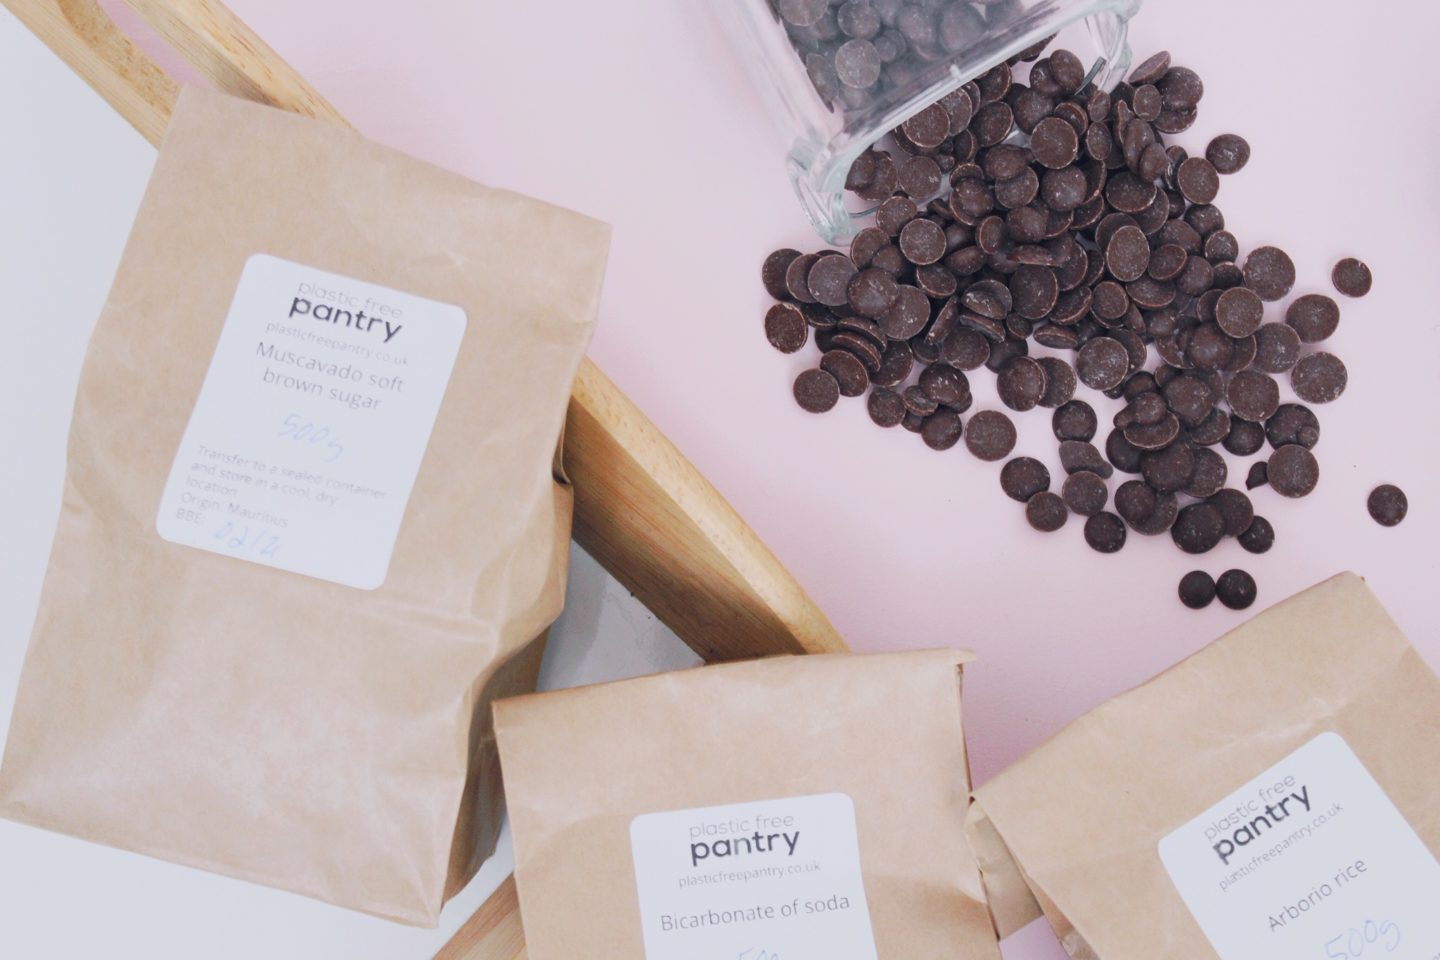 zero-waste pantry staples - sugar, chocolate drops, rice, and bicarbonate of soda